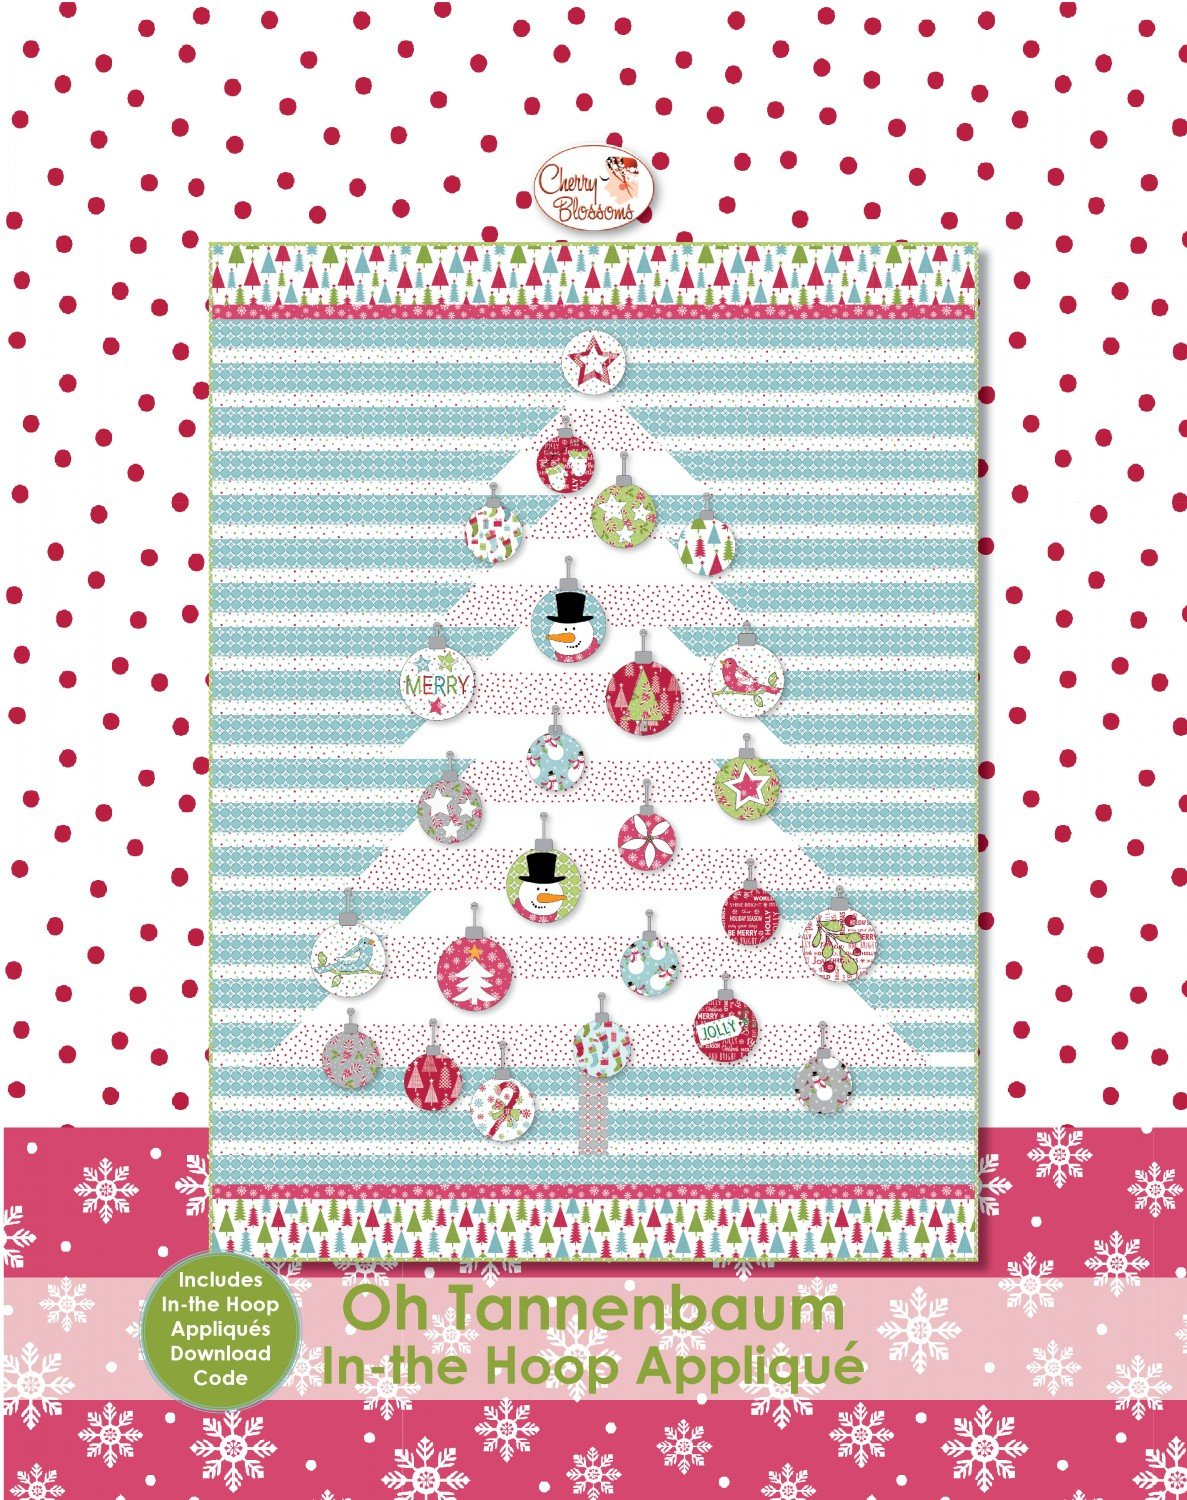 Oh Tannenbaum with In the Hoop Applique  ~ RELEASE DATE JAN 30/20 ~